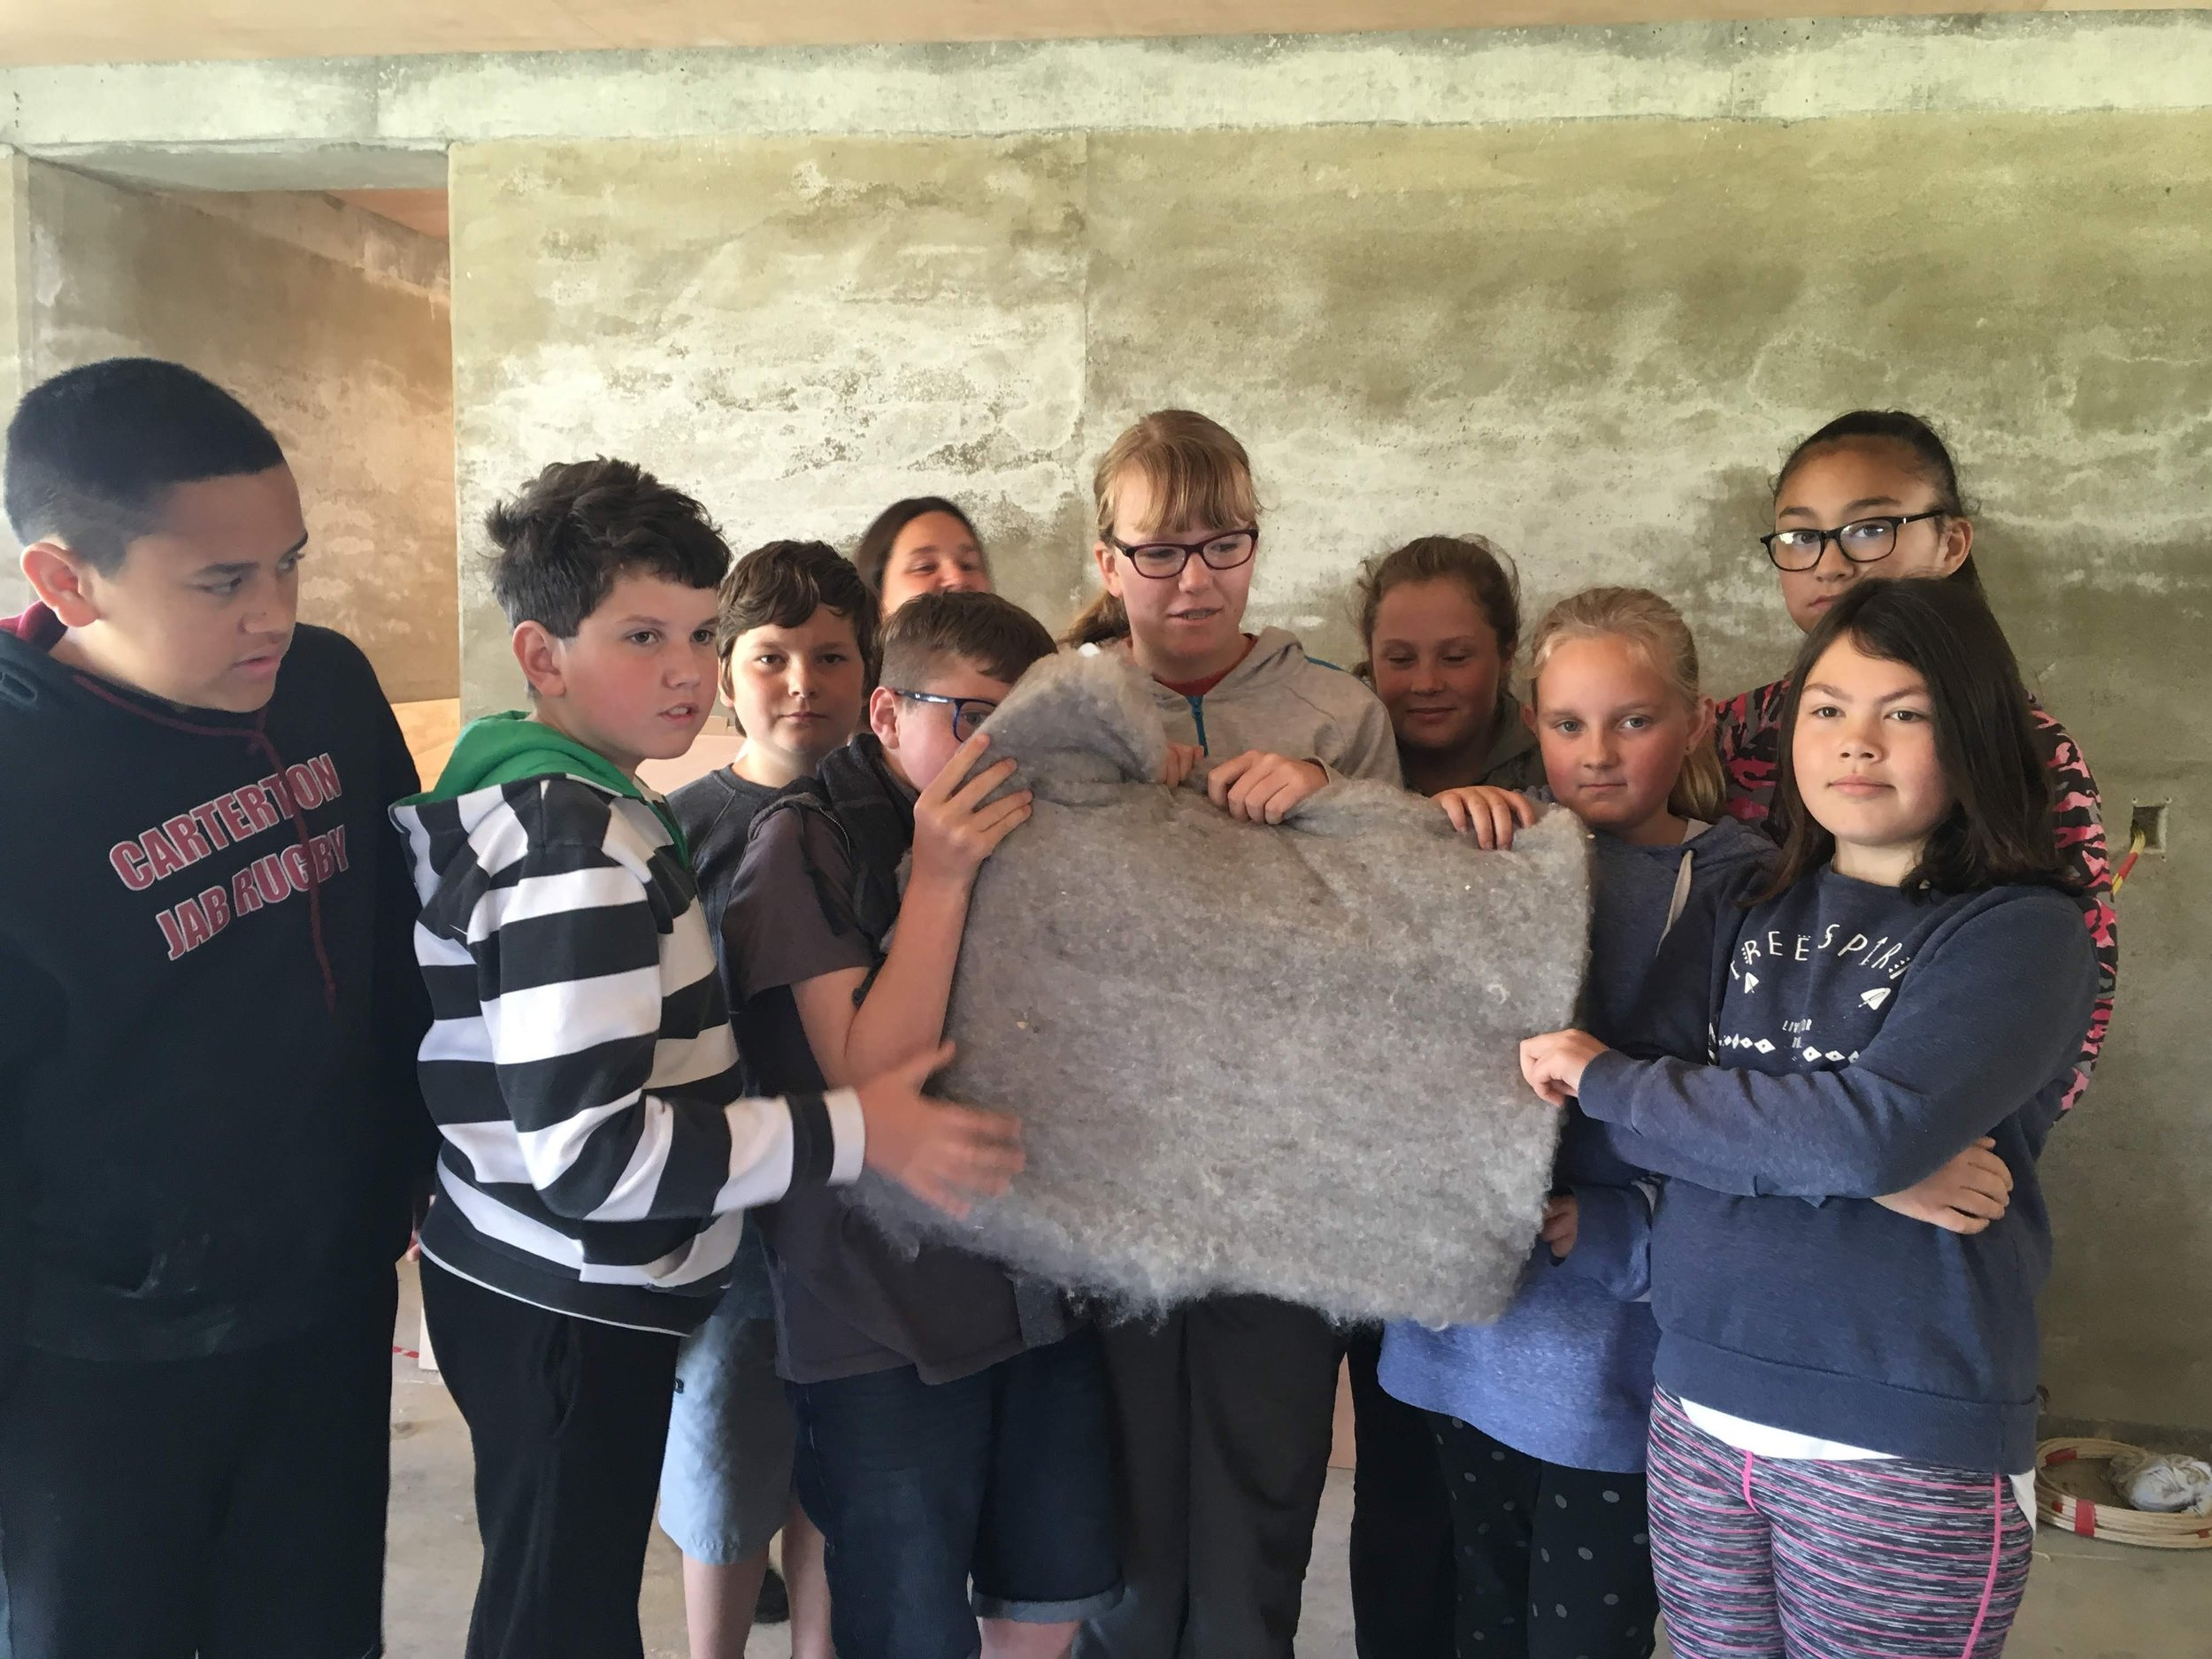 Students from South End School Carterton investigate insulation options - here is wool insulation in a rammed earth house building site in Carterton